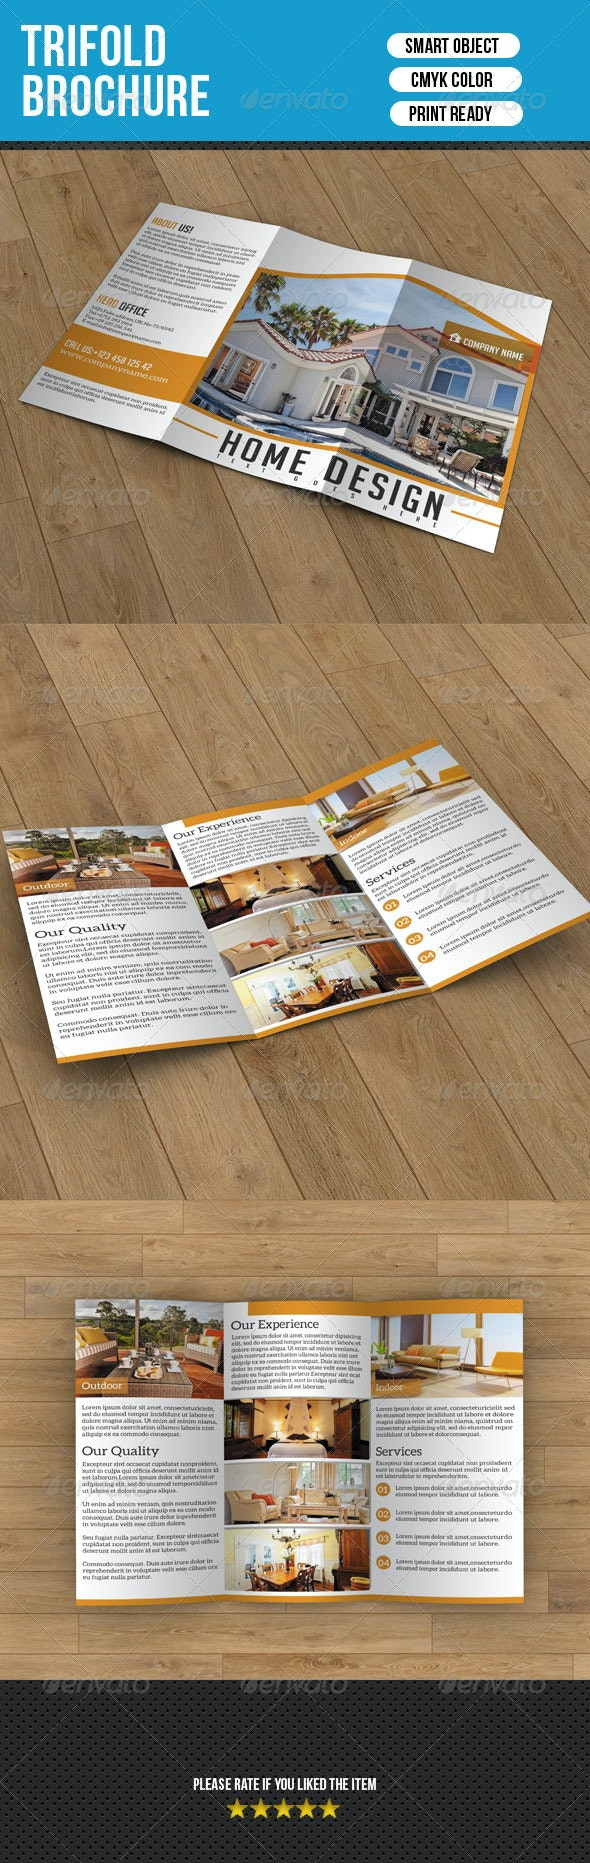 Trifold Brochure-Real Estate Company - Corporate Brochures